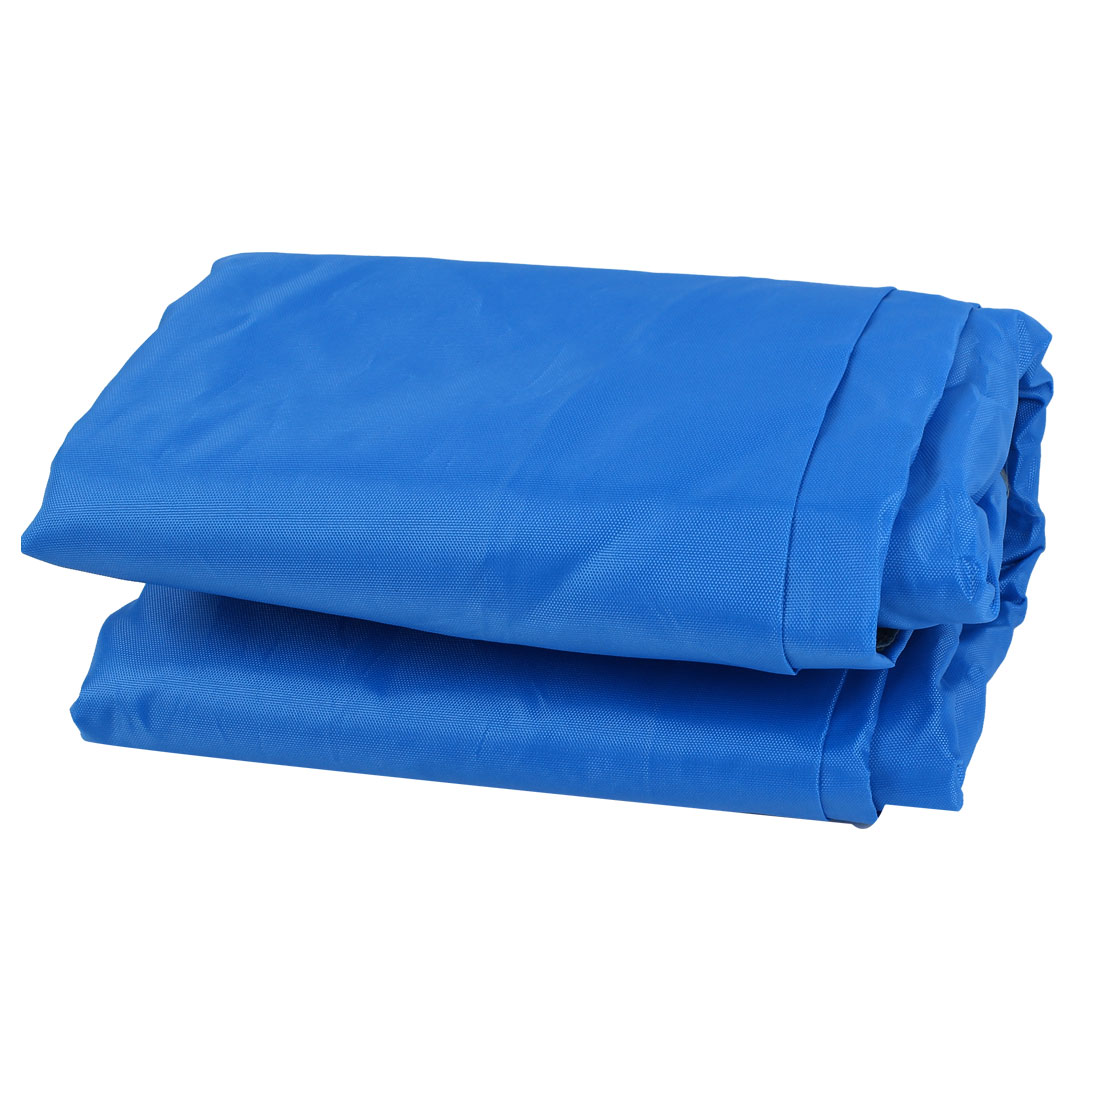 Portable Outdoor Camping Beach Picnic Rain Sun Shelter Tent Mat Cushion Blue 215cm x 215cm